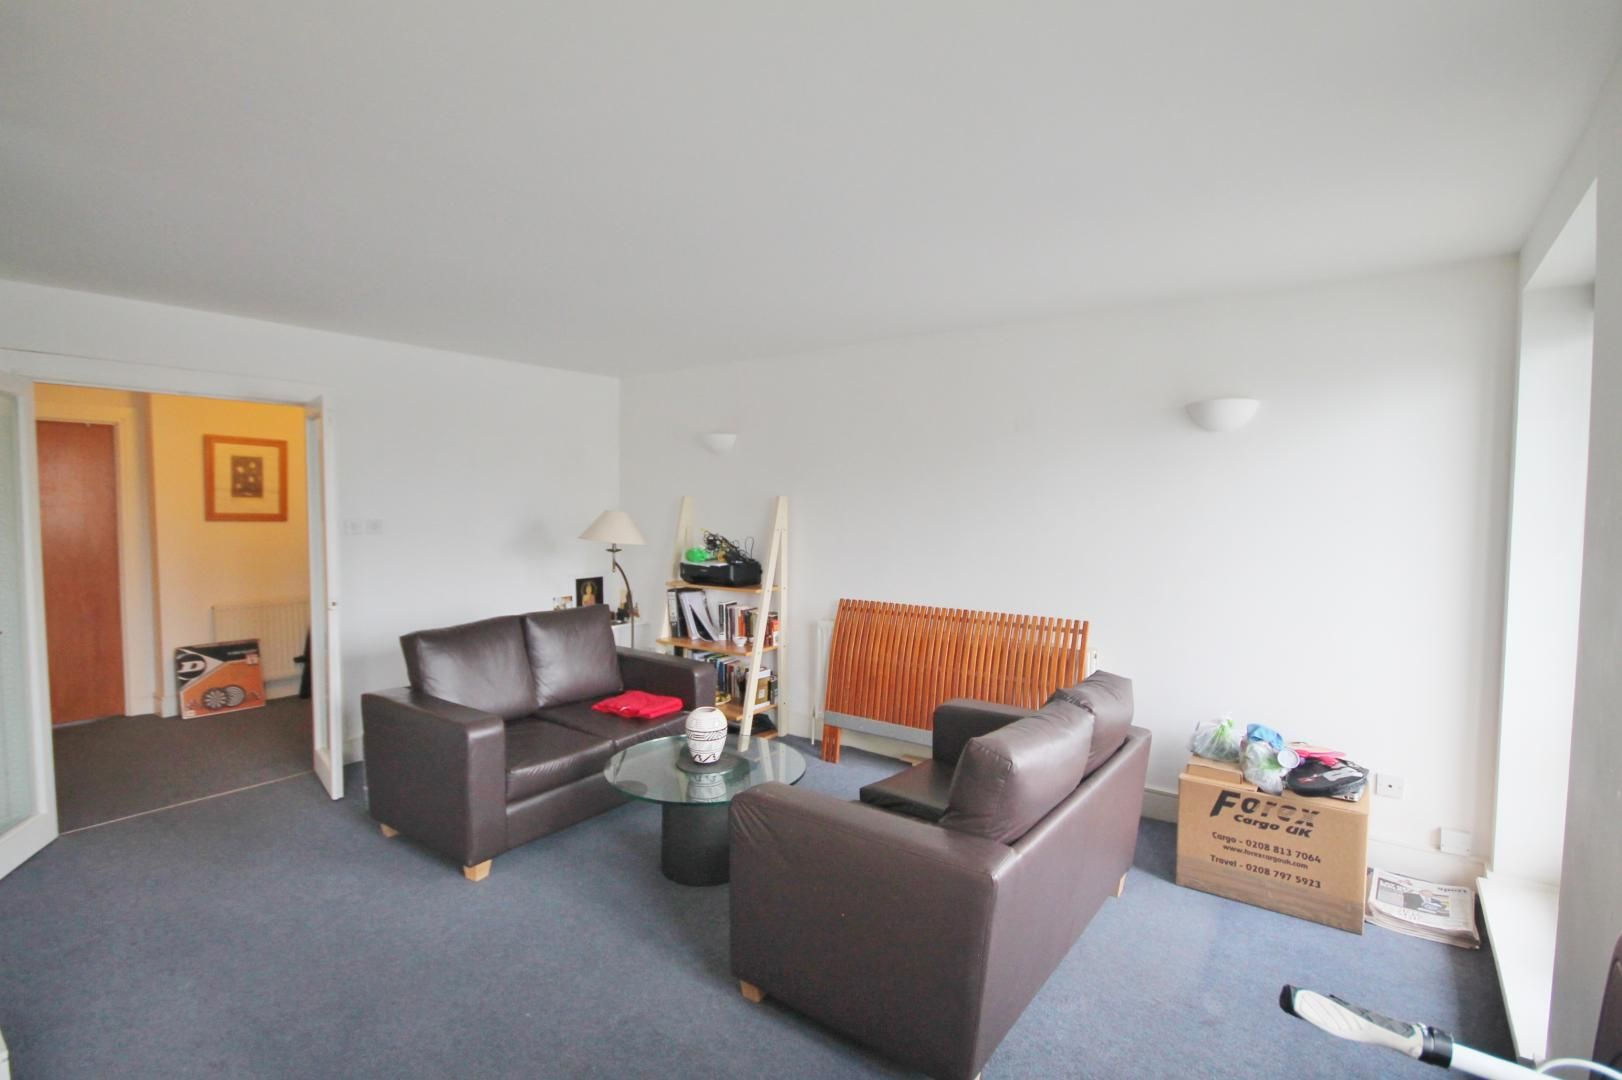 2 bed flat to rent in Kingsbridge Court, E14